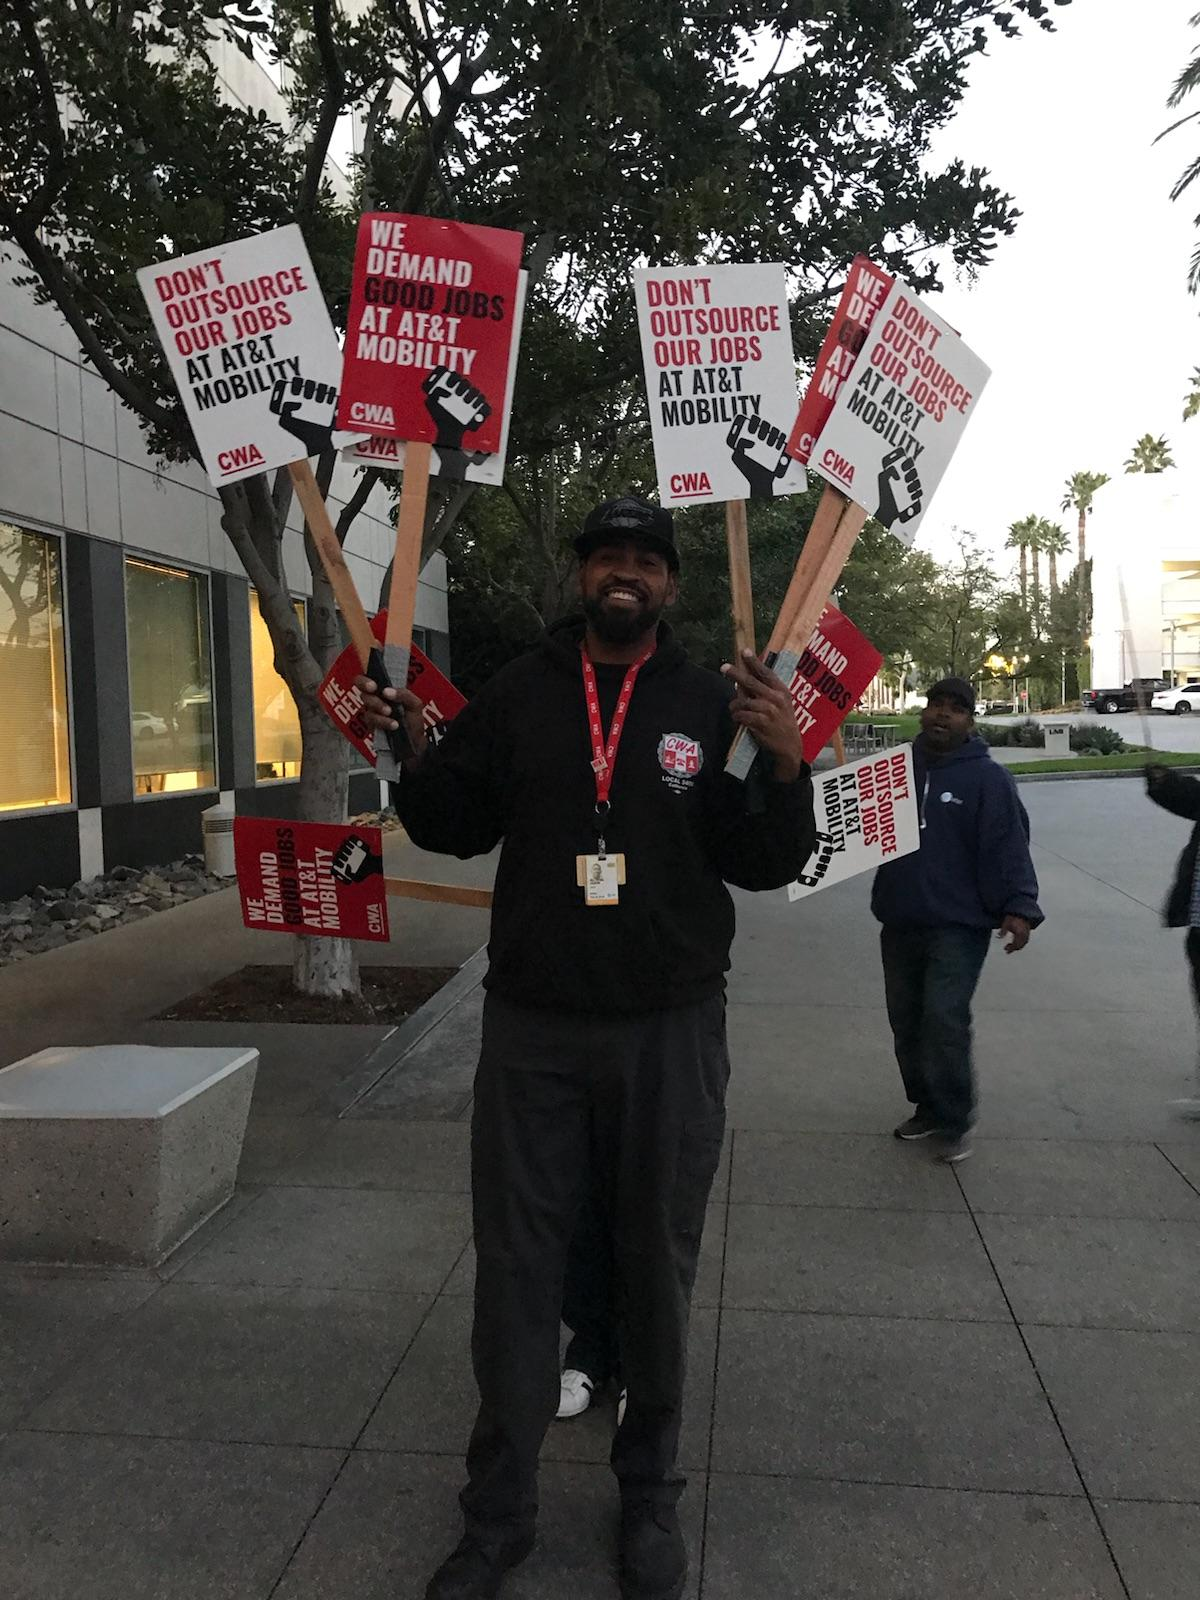 District 9 AT&T Mobility Informational Picket Action, January 22, 2018 | District 9